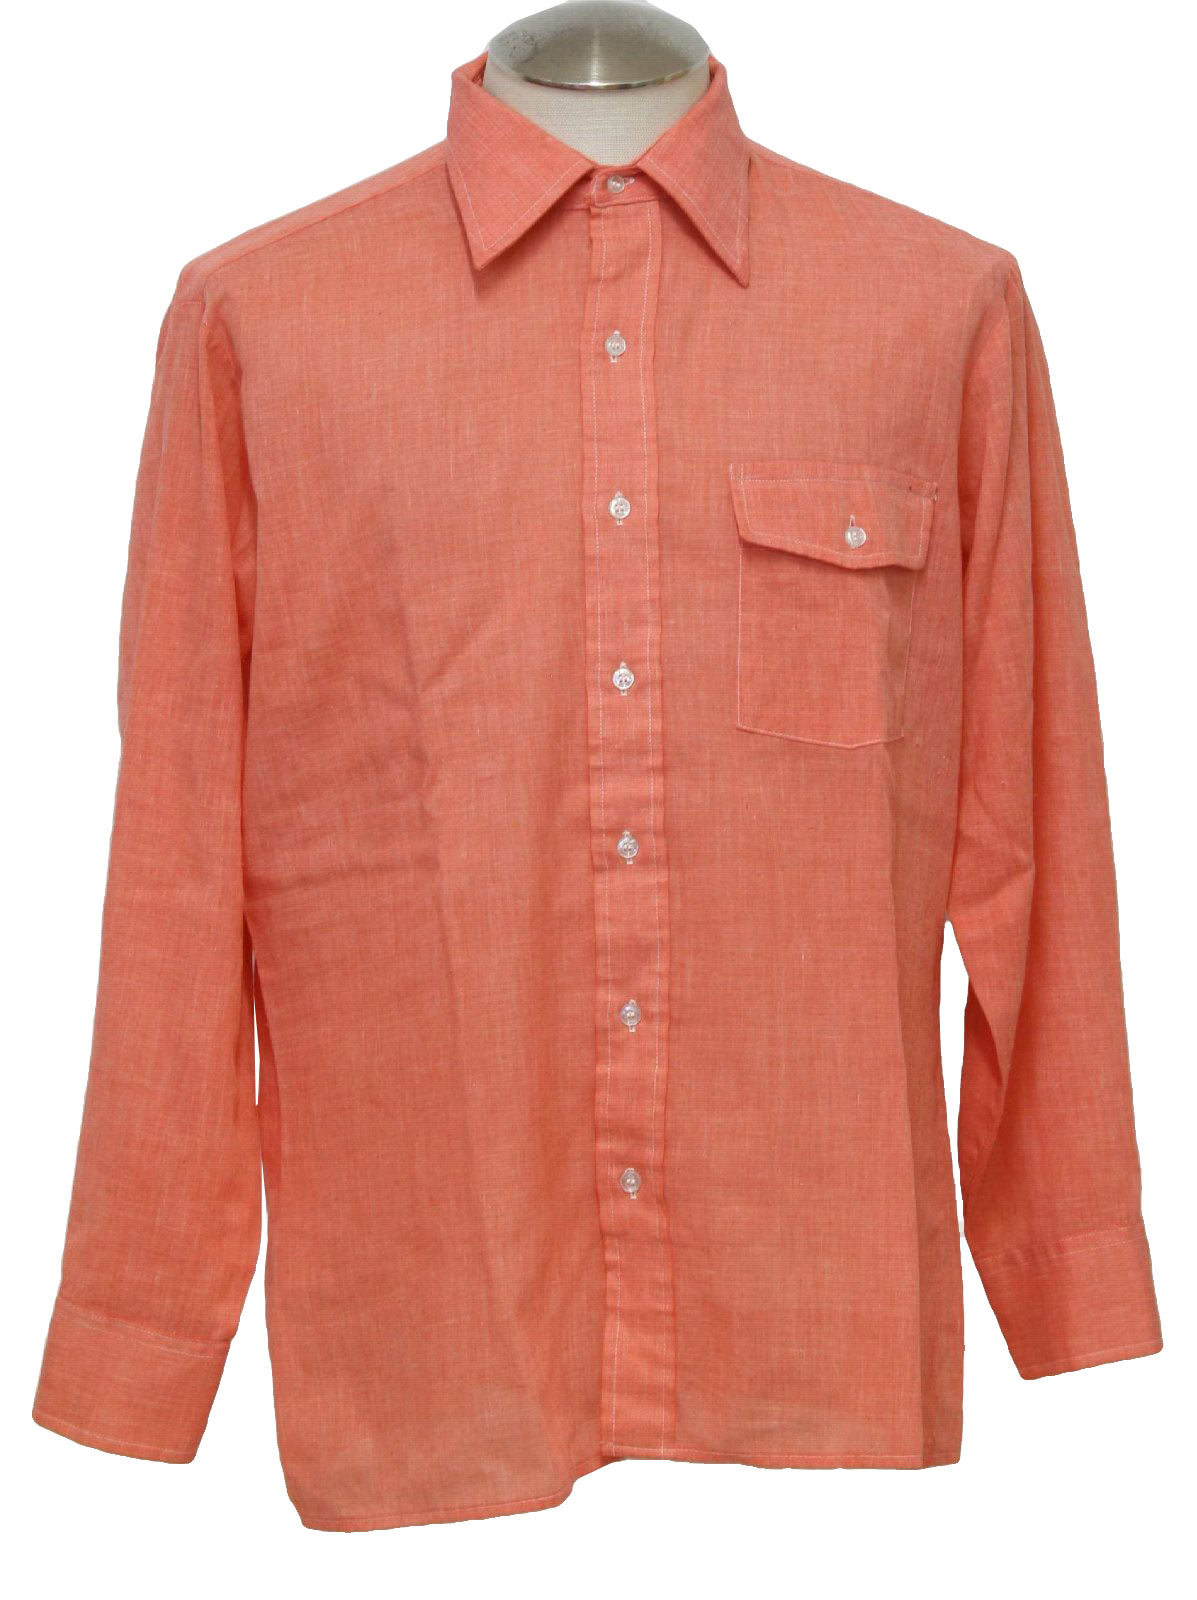 Retro 1970's Shirt (Brigade) : 70s -Brigade- Mens heathered salmon ...